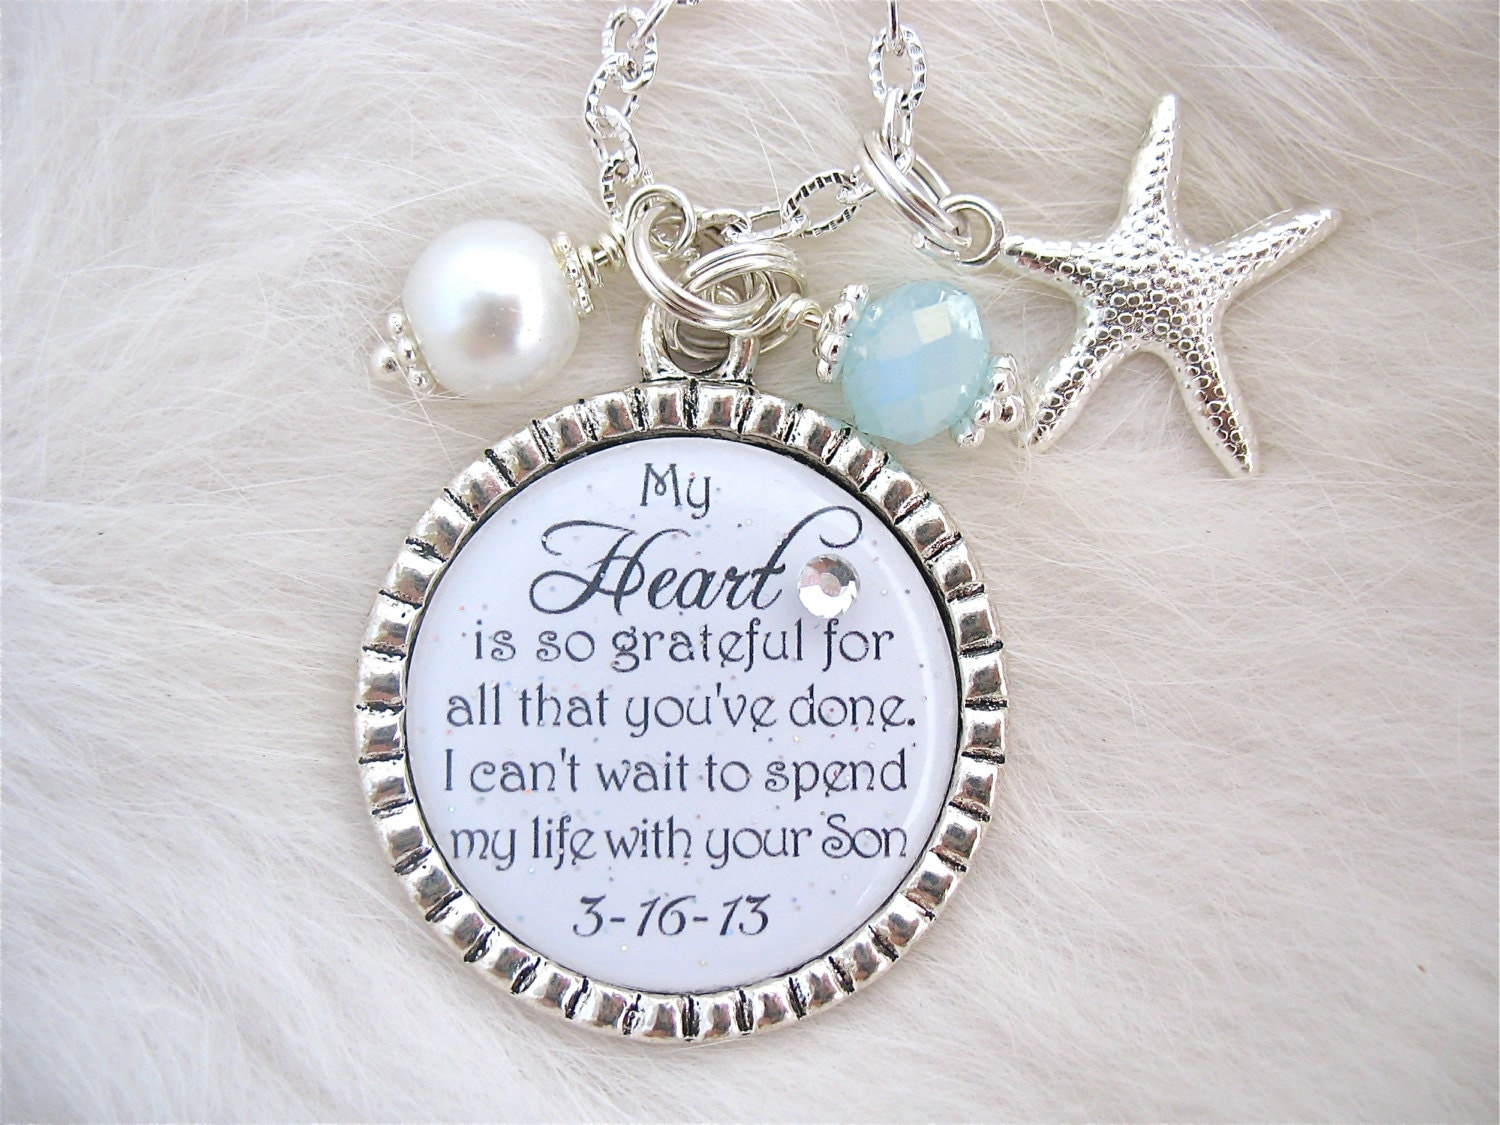 Wedding Gifts For Daughter In Law : ... Daughter Inspirational Quotes.Daughter In Law Gifts For Wedding Day